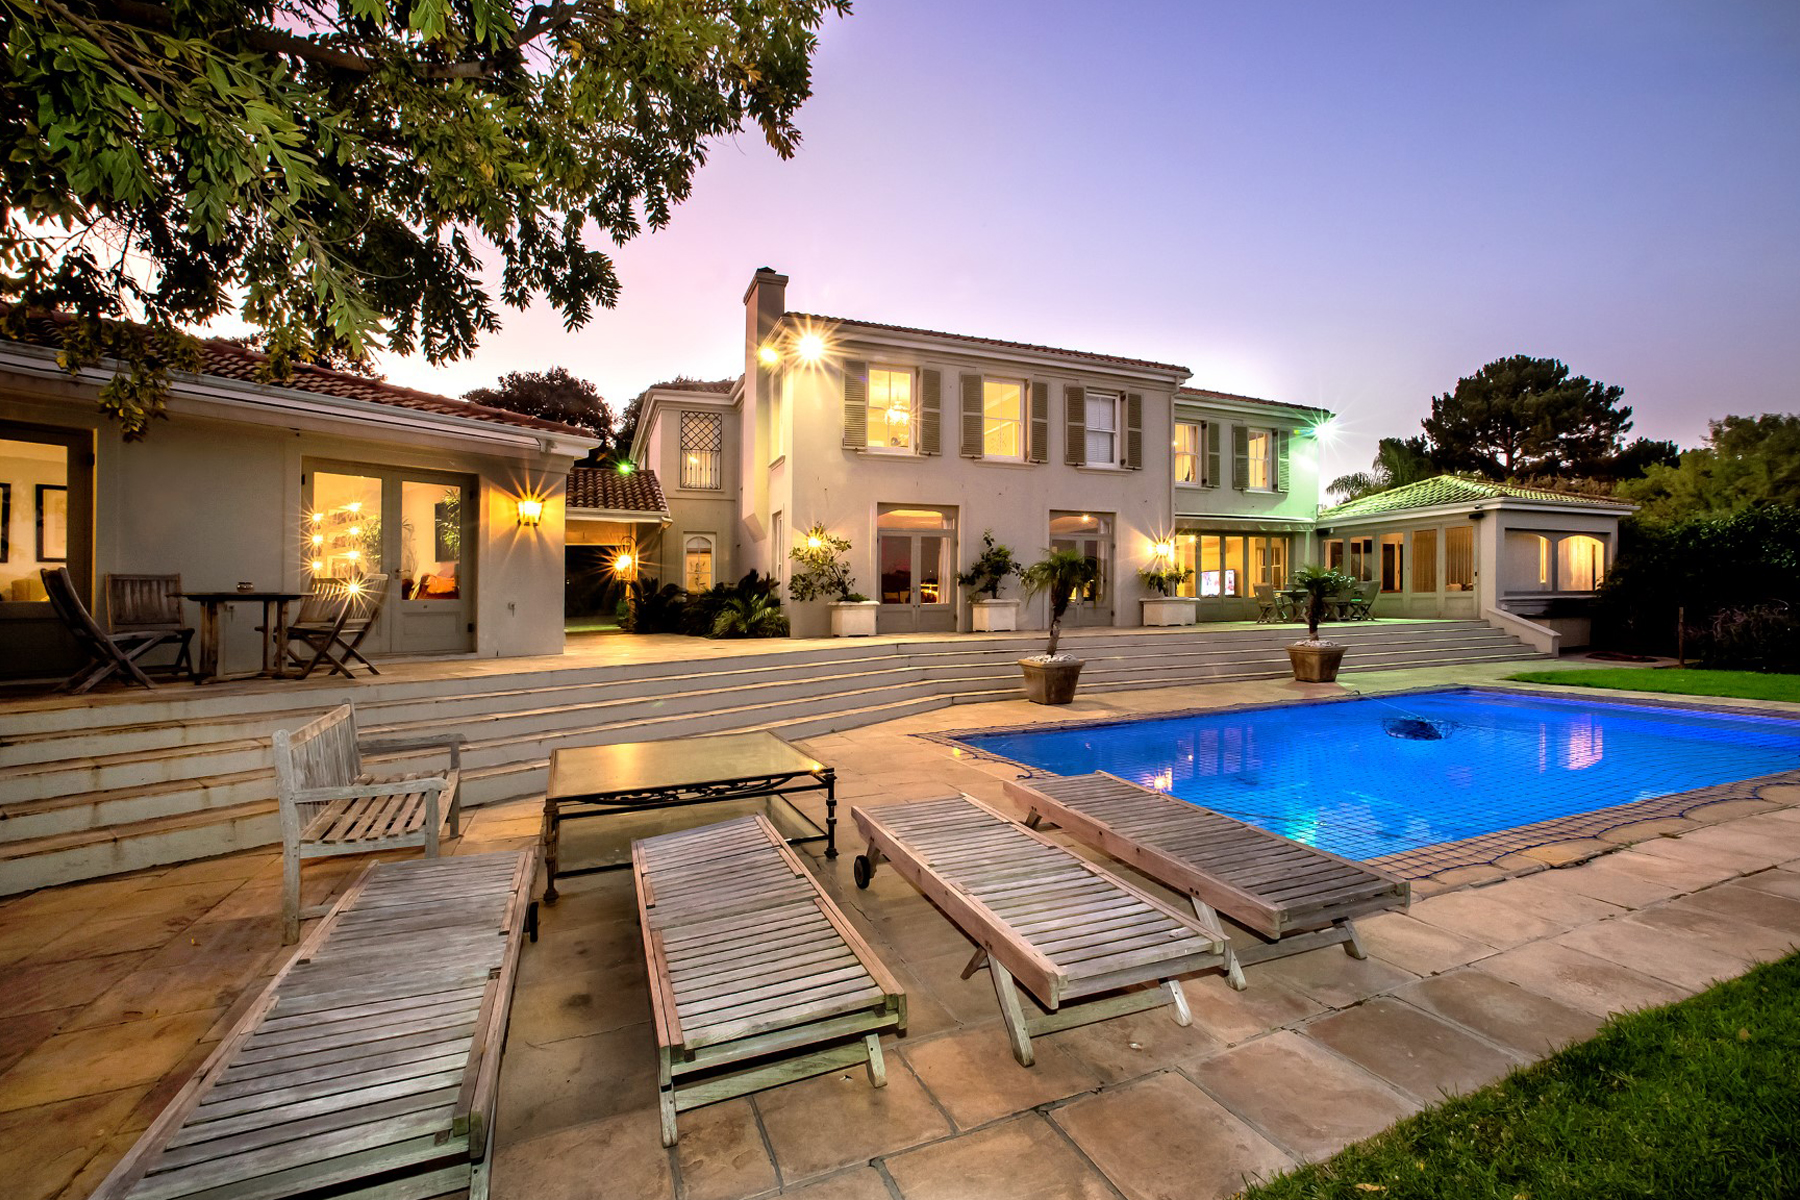 Single Family Home for Sale at Constantia Cape Town, Western Cape, 7806 South Africa